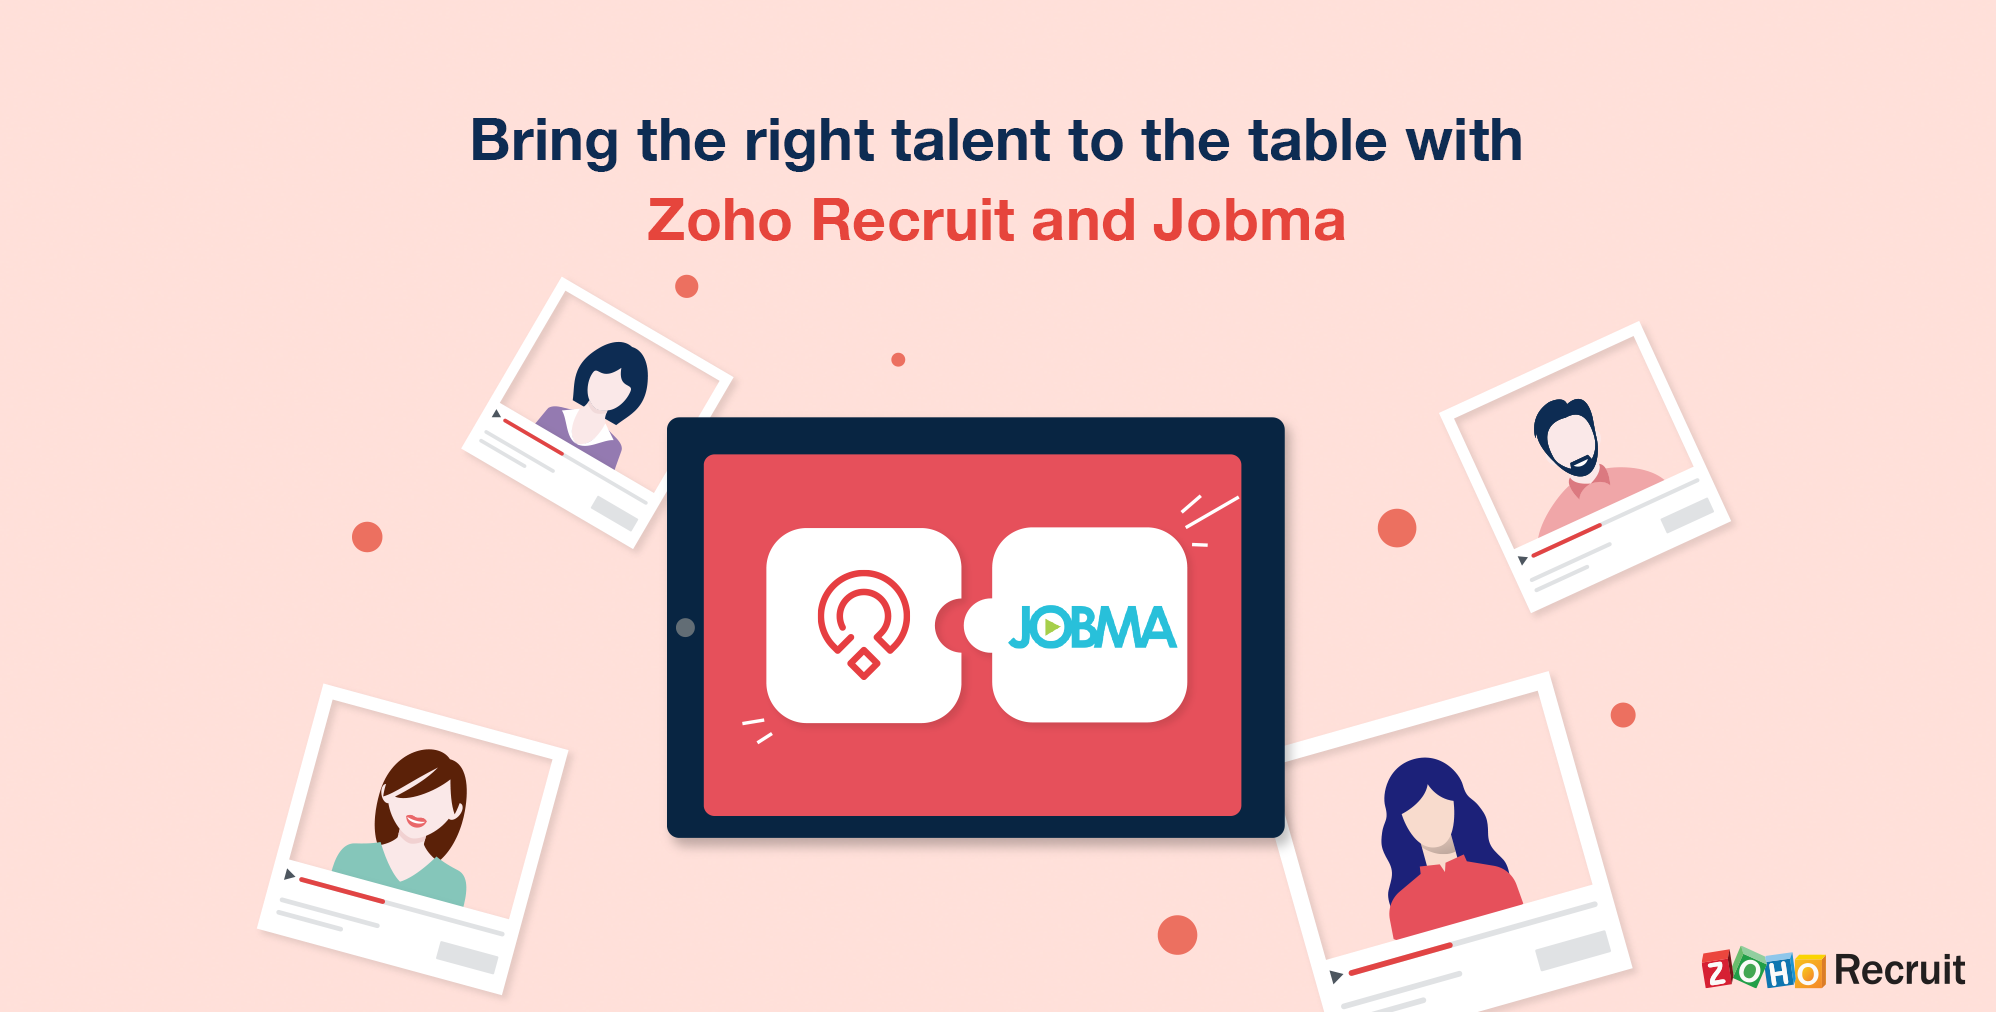 Zoho Recruit integrates with Jobma for video interviews